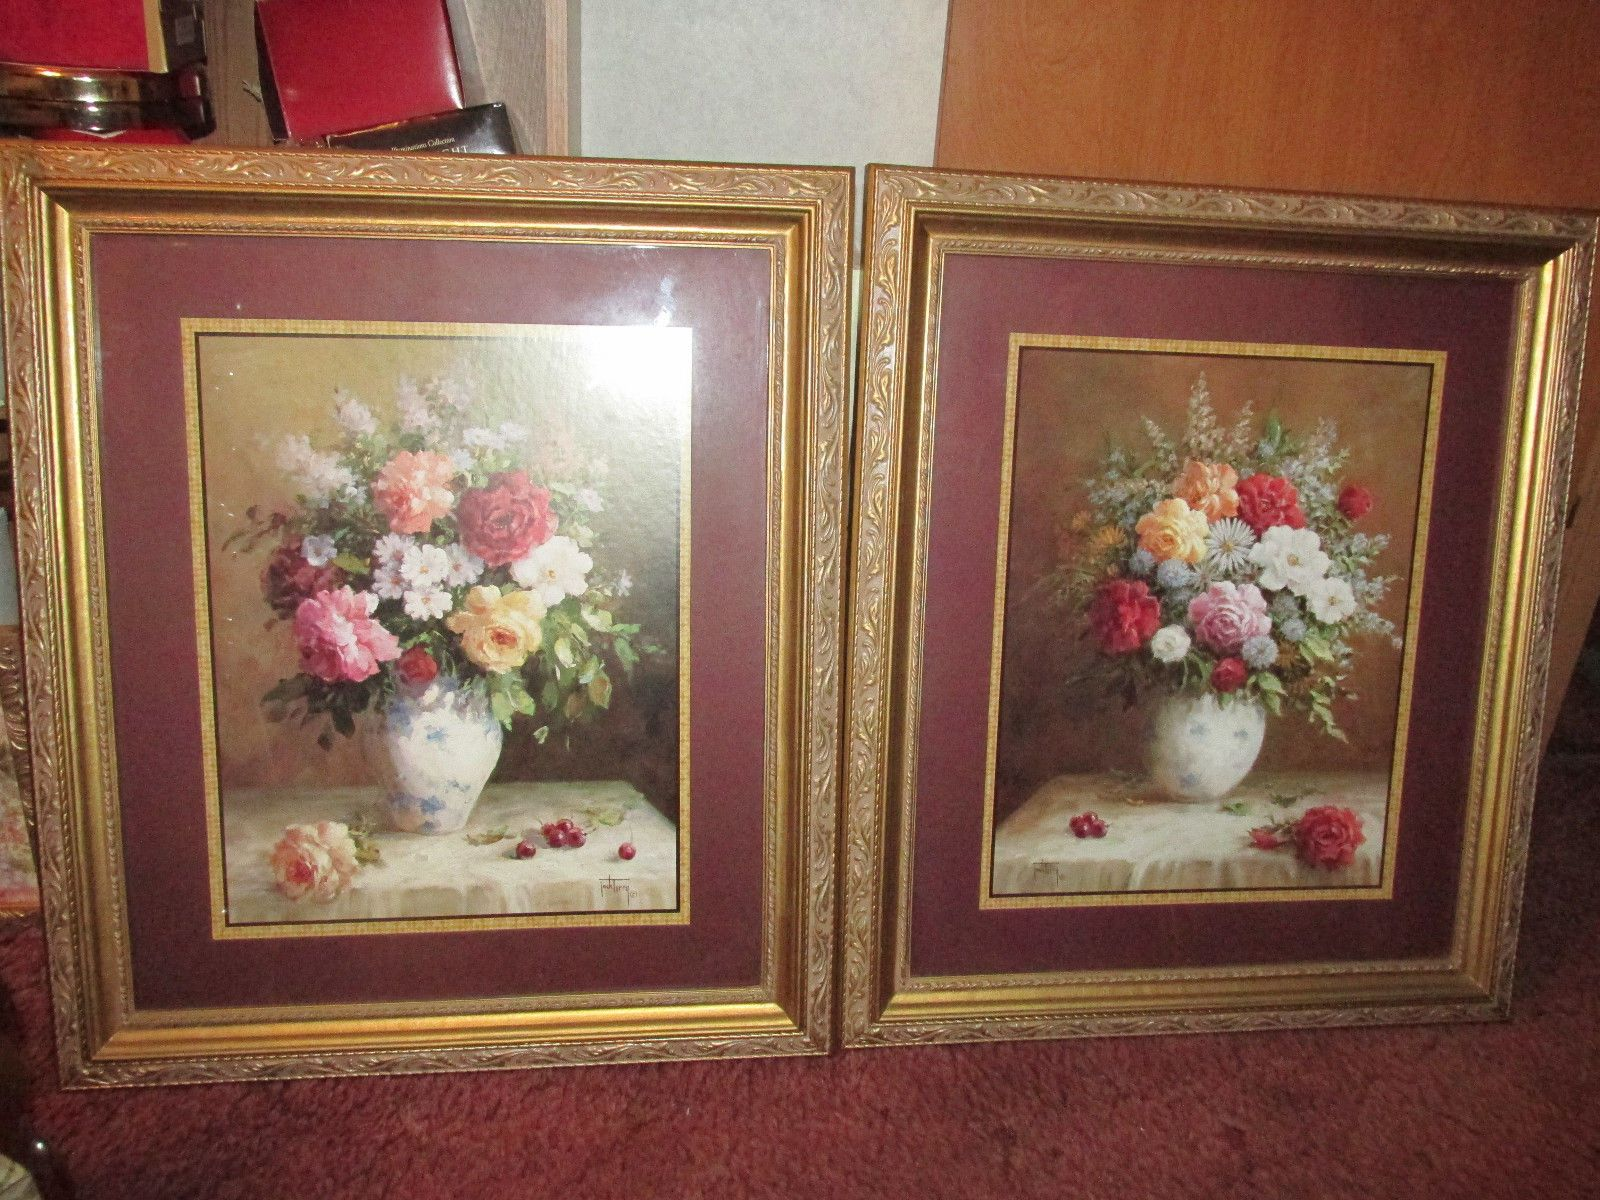 Two Home Interiors Beautiful Floral Pictures By Jack Terry 24 X28 Ebay Home Interiors And Gifts House Interior Pictures For Sale